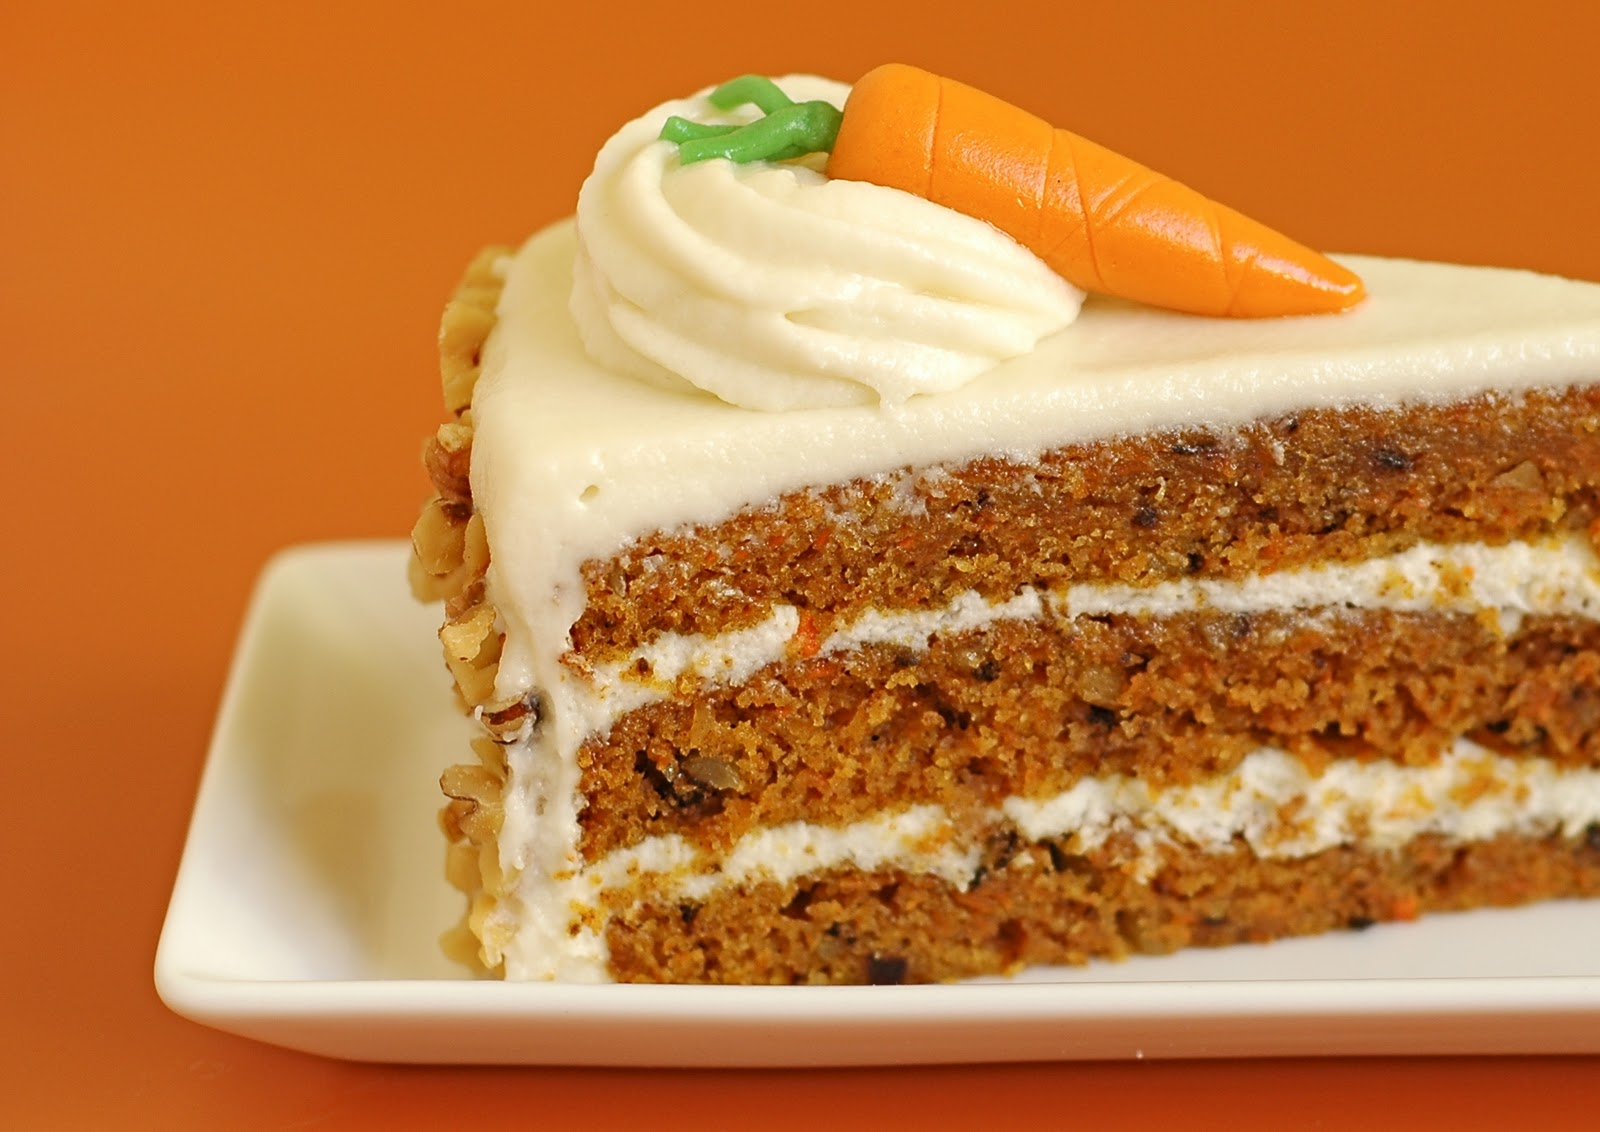 Cream Cheese Icing For Carrot Cake